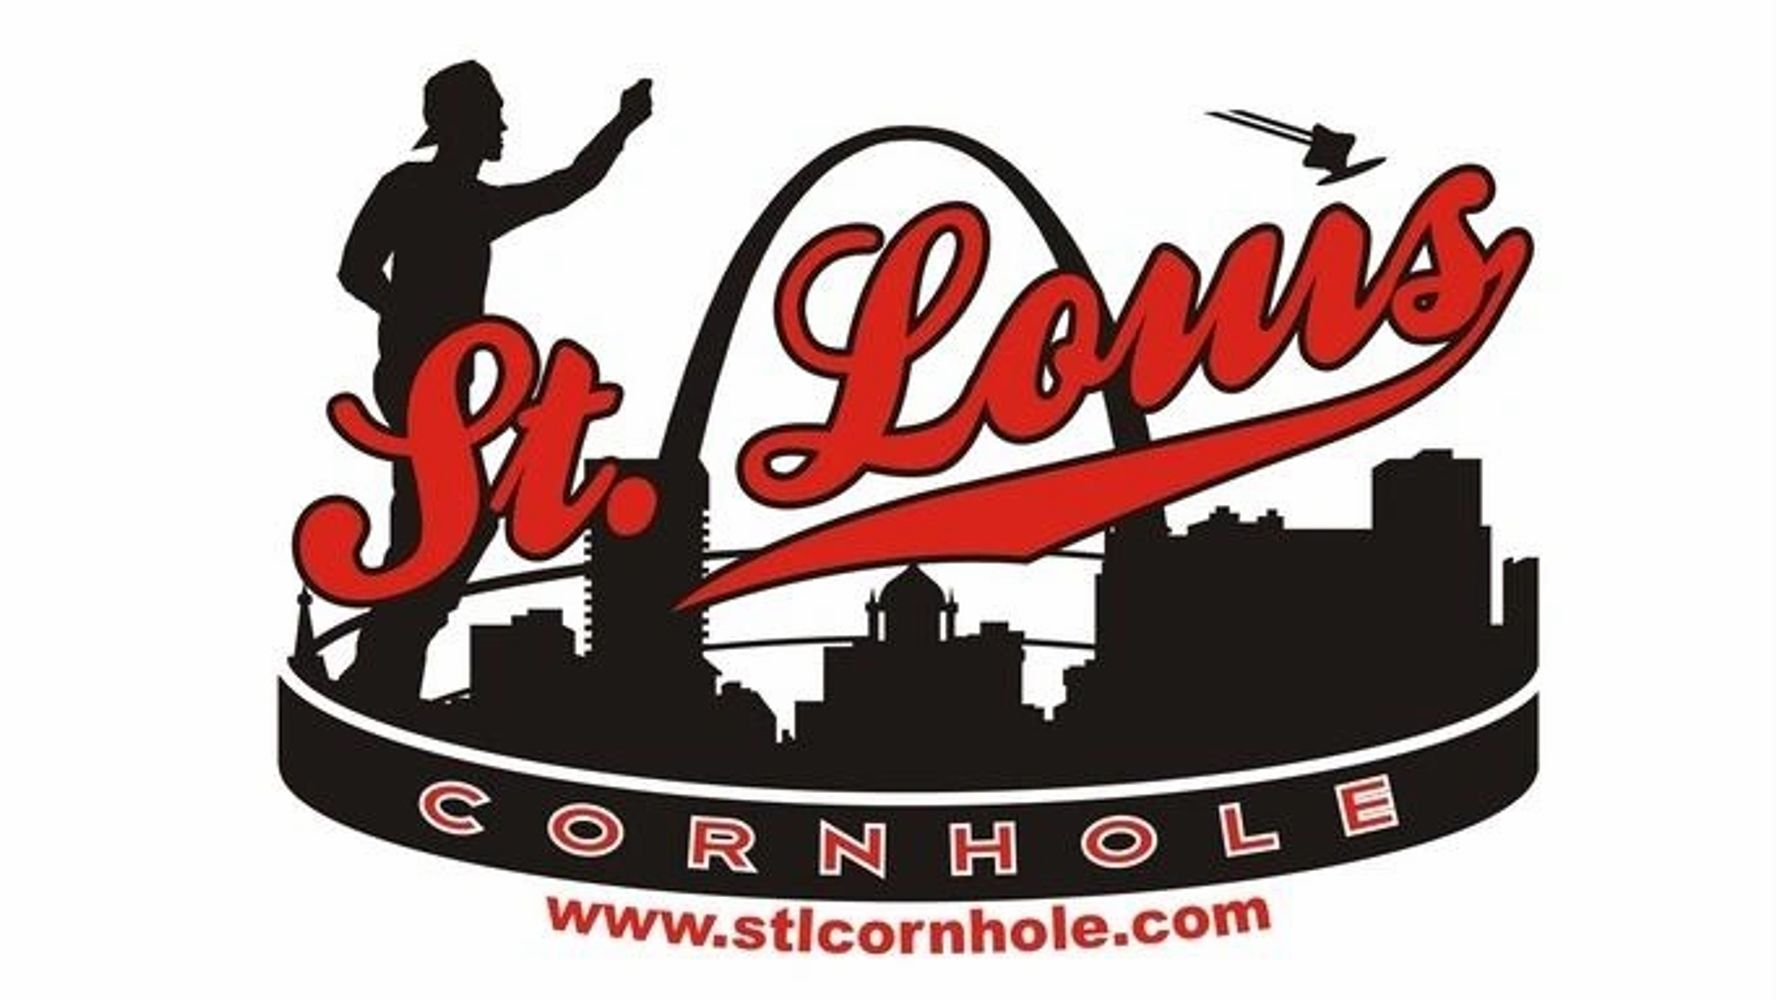 St. Louis Cornhole Game.   The #1 Cornhole Bags and Boards seller in the St. Louis, Missouri area.